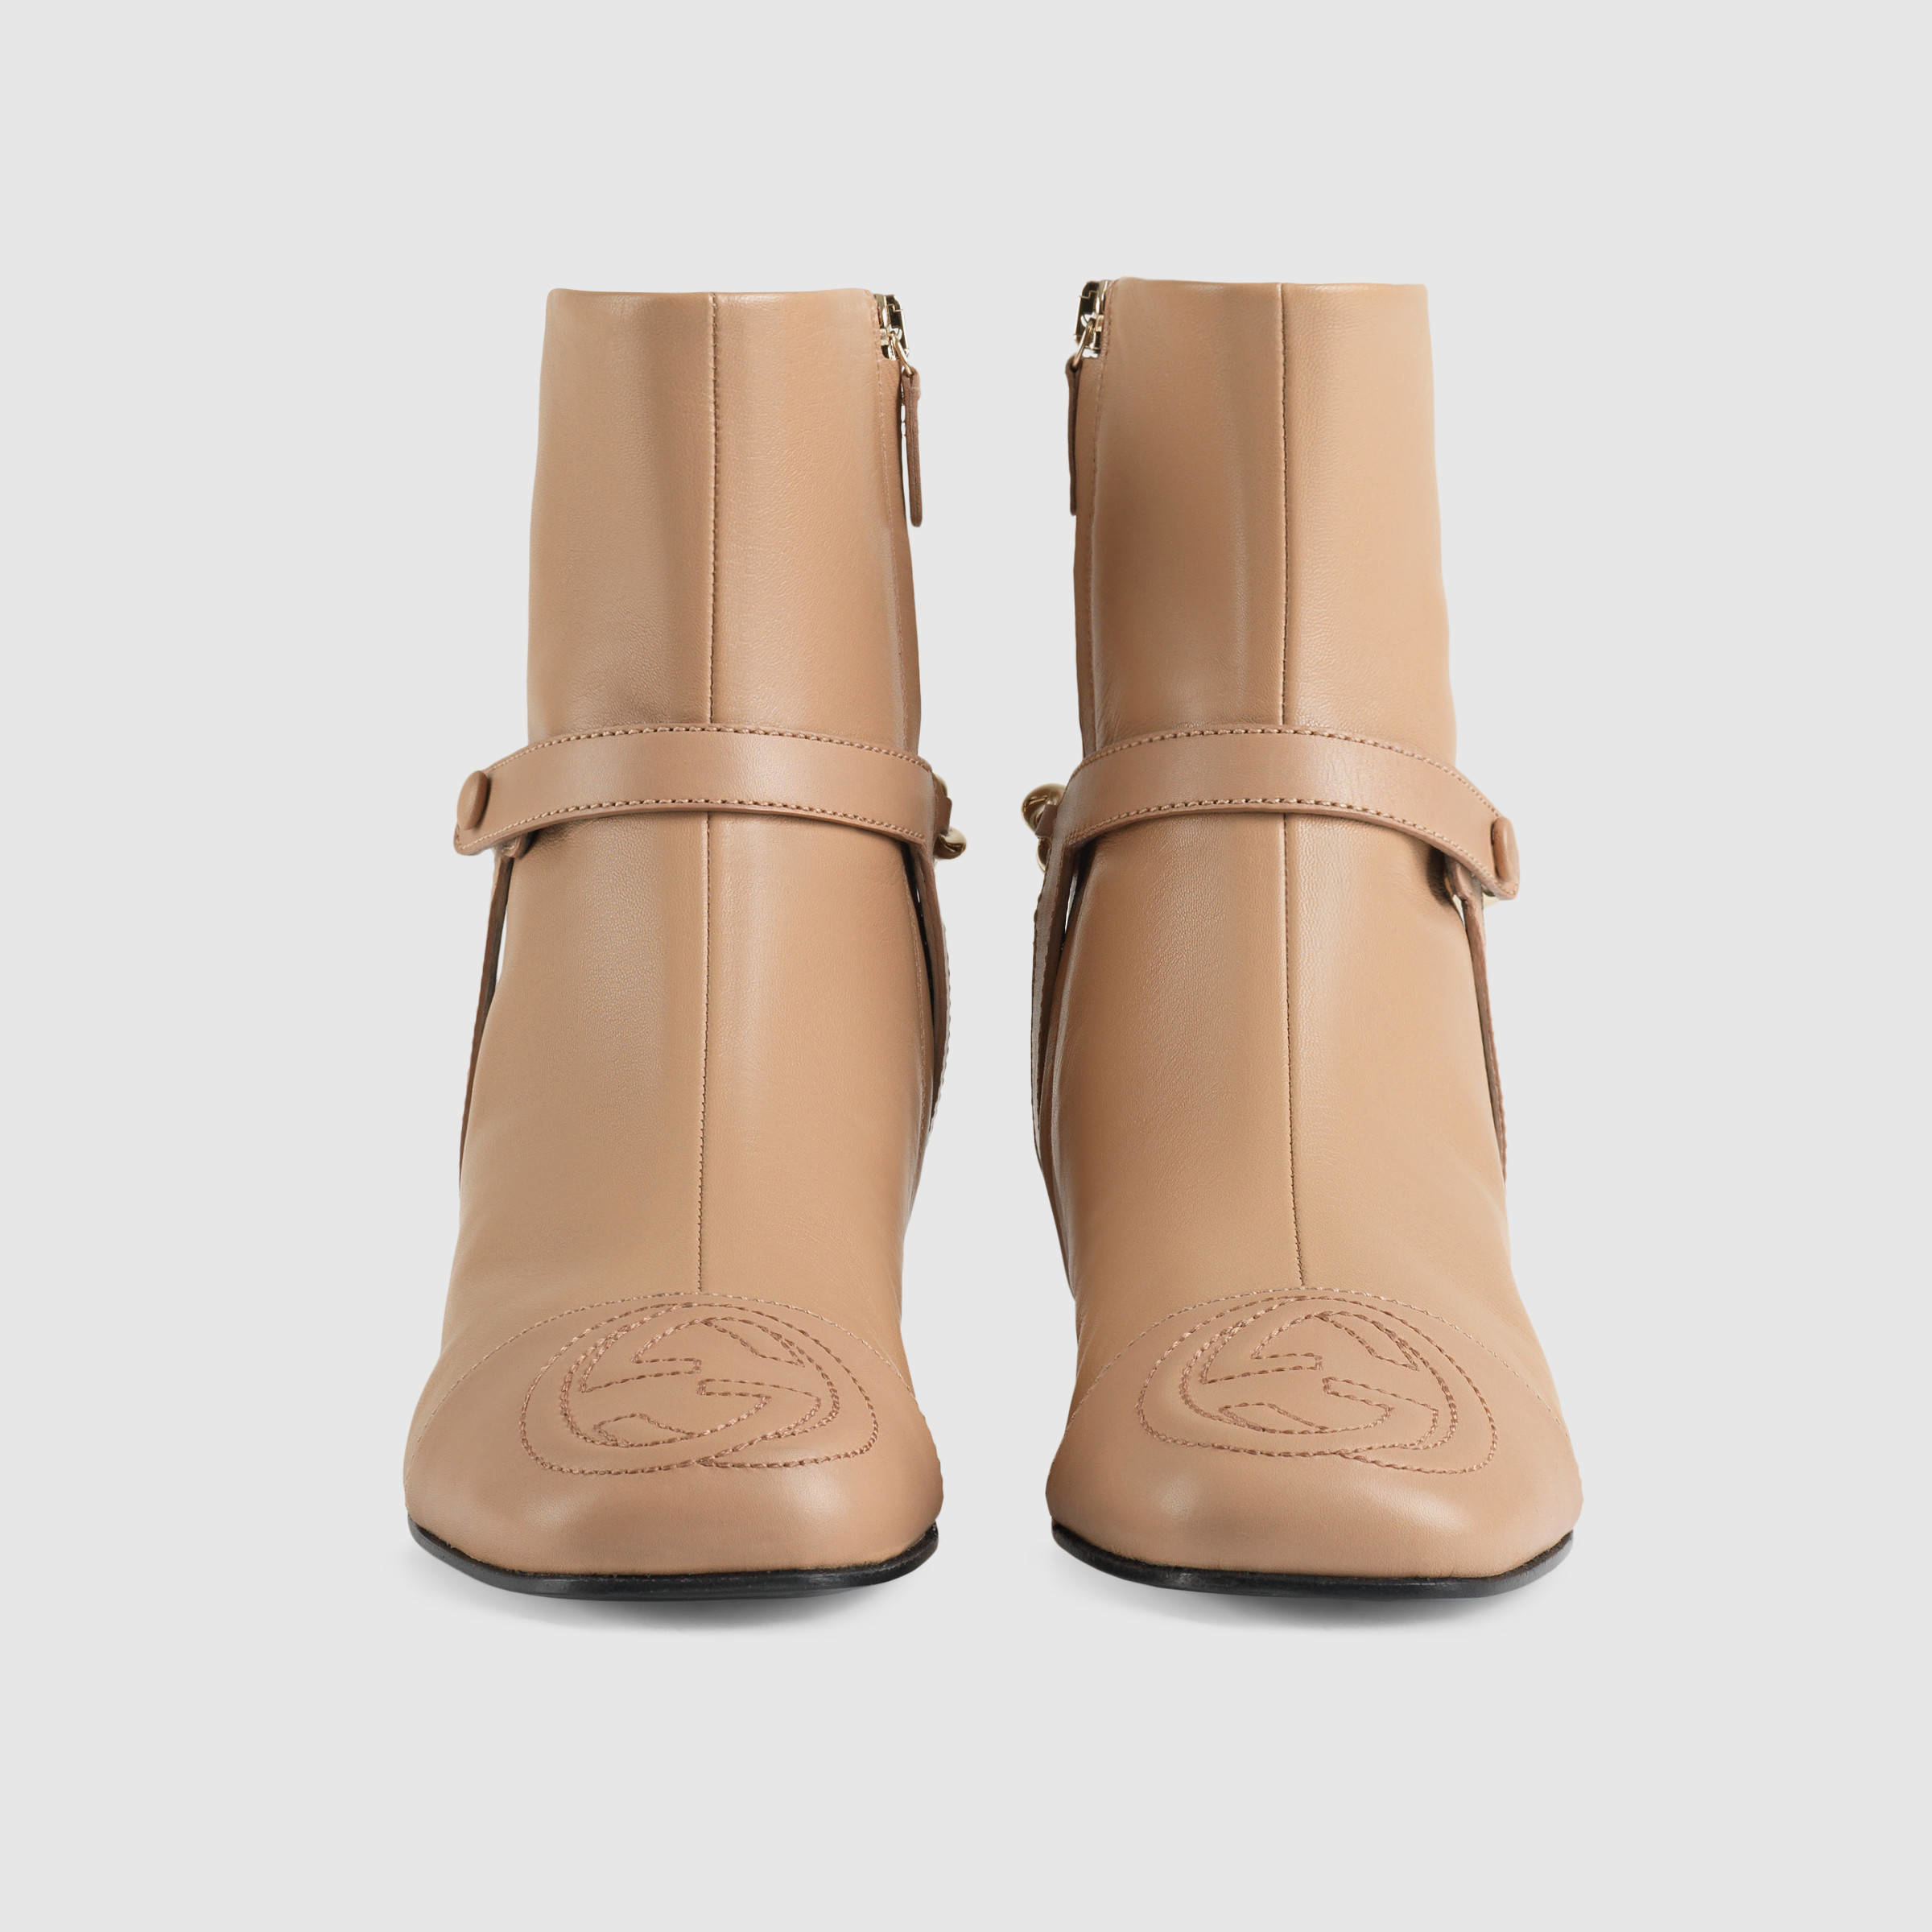 bc2ed69a821e Gucci Soho Leather Ankle Boot - Lyst